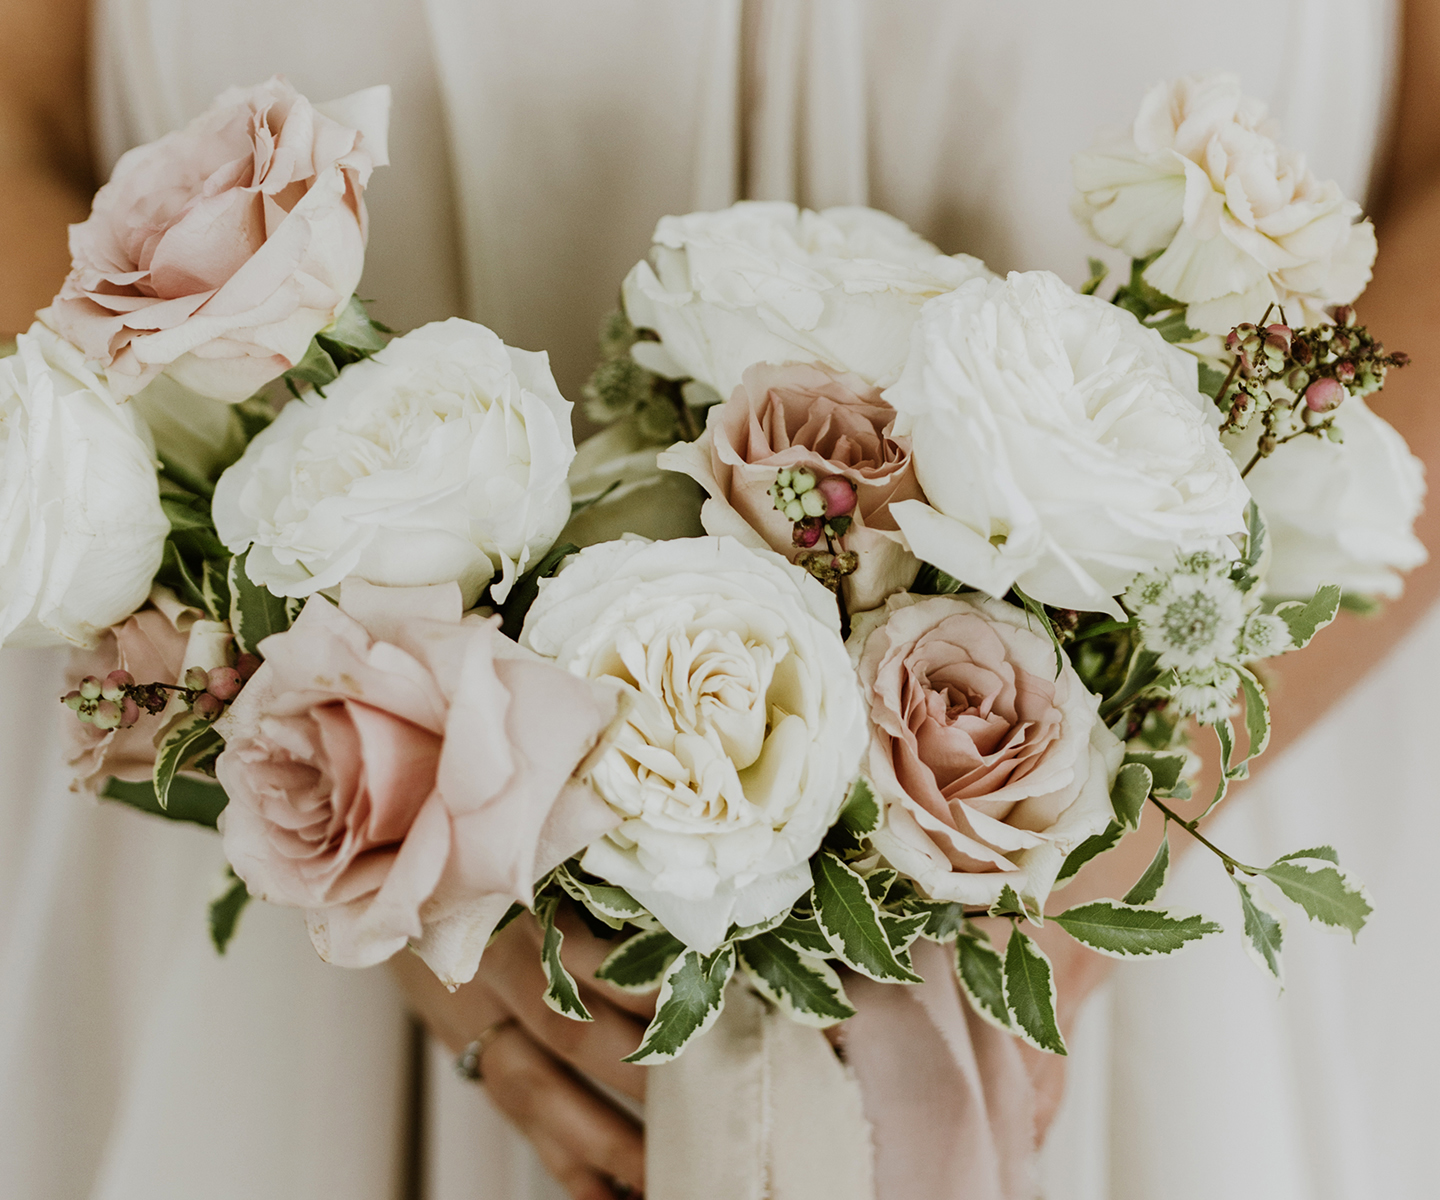 Bridal Bouquet Inspiration for Spring: 12 of the Prettiest Bouquets We've Seen This Spring in Alberta and the Rockies - Alexandra Rose on The Bronte Bride